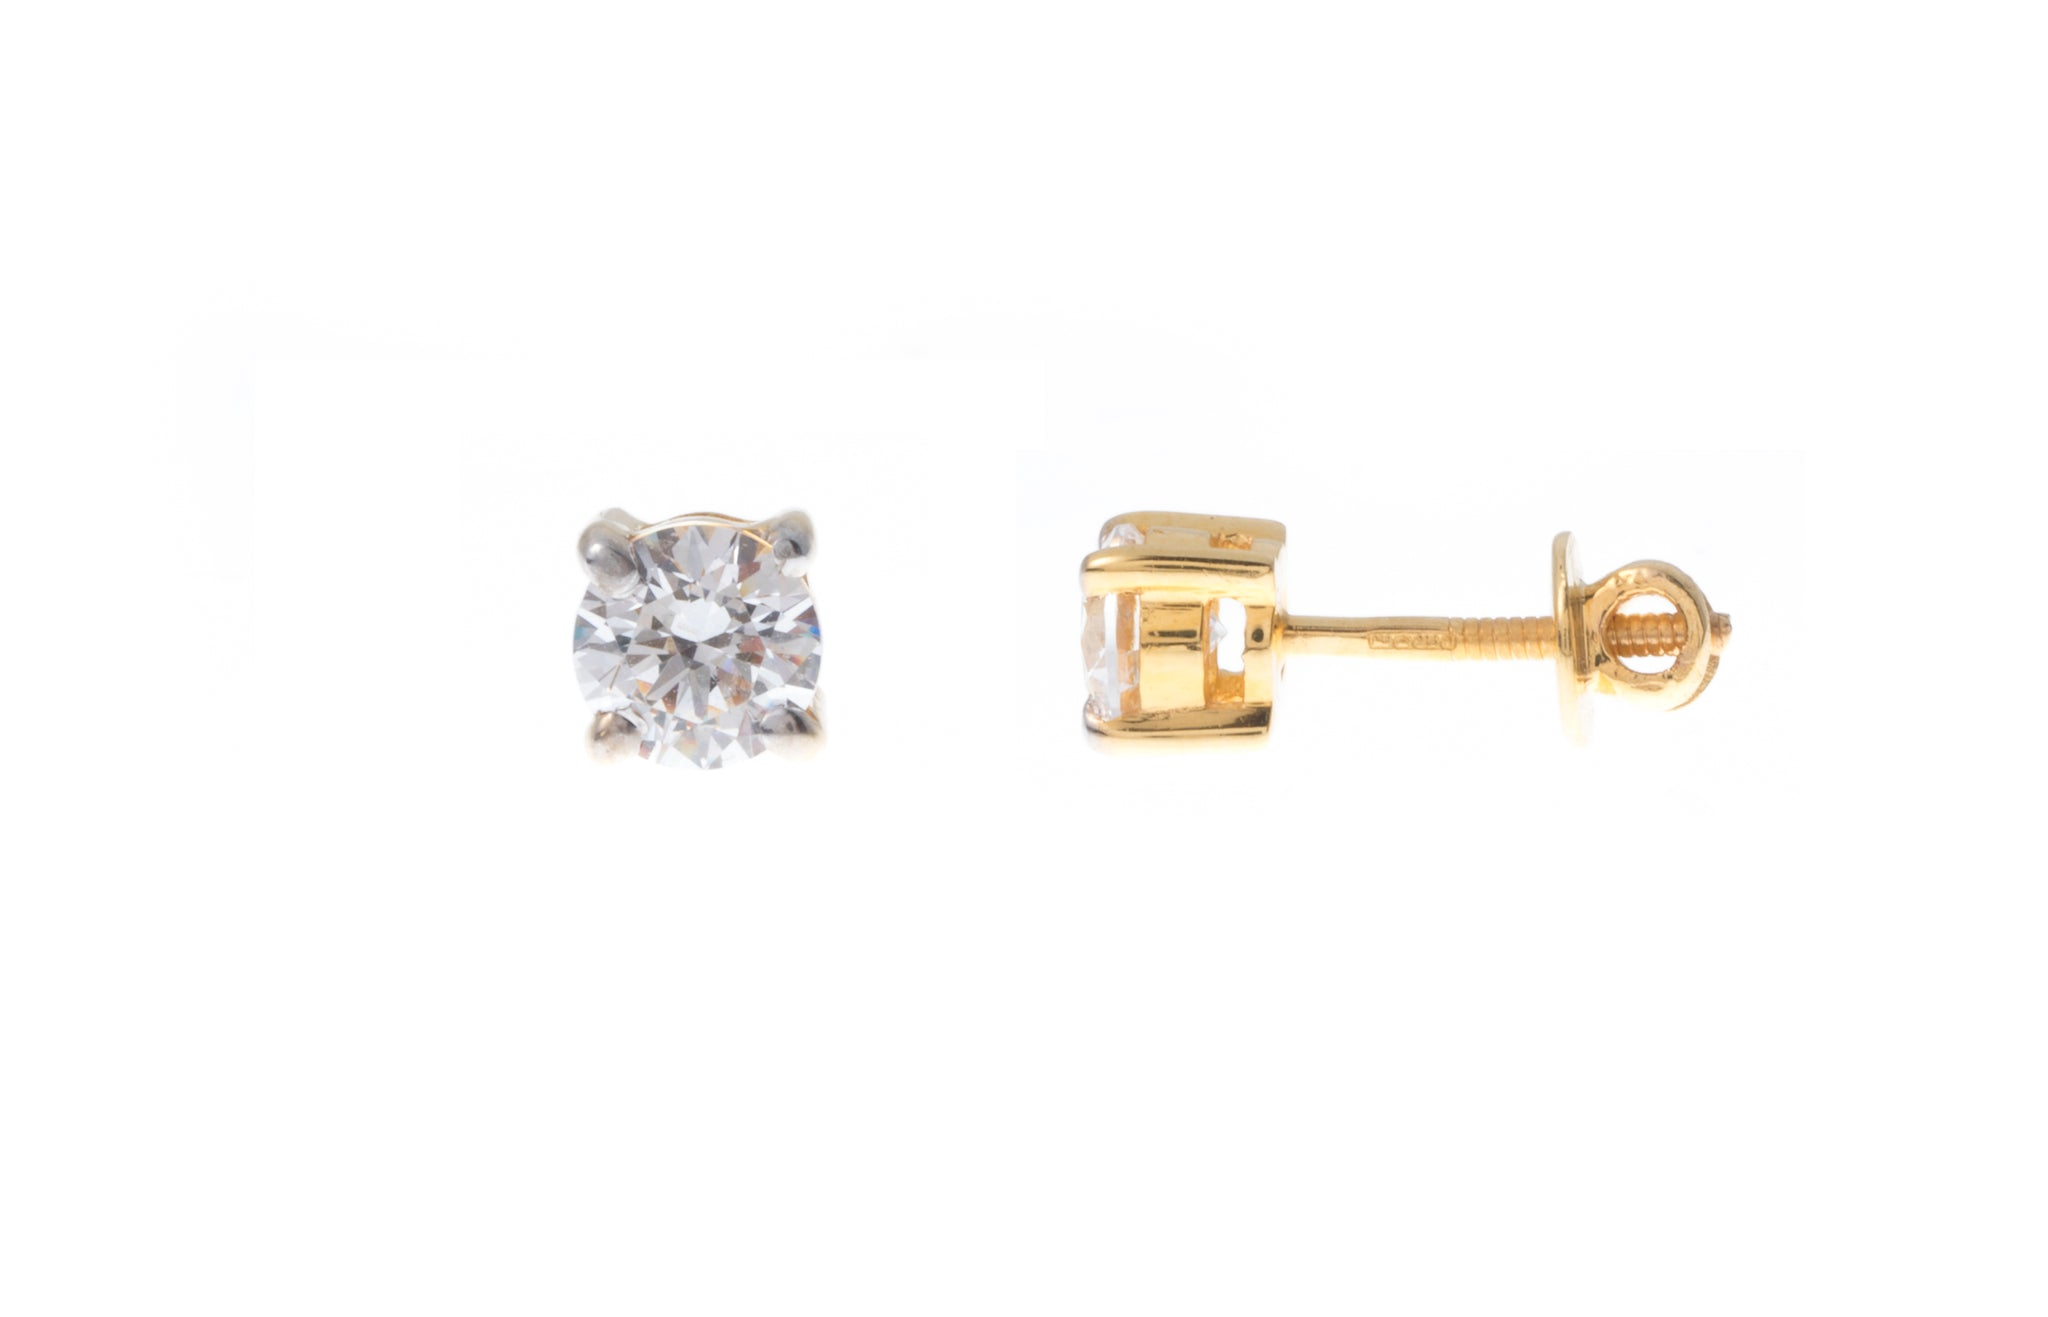 22ct Gold Swarovski Zirconia Stud Earrings (2.75g) PSE7026